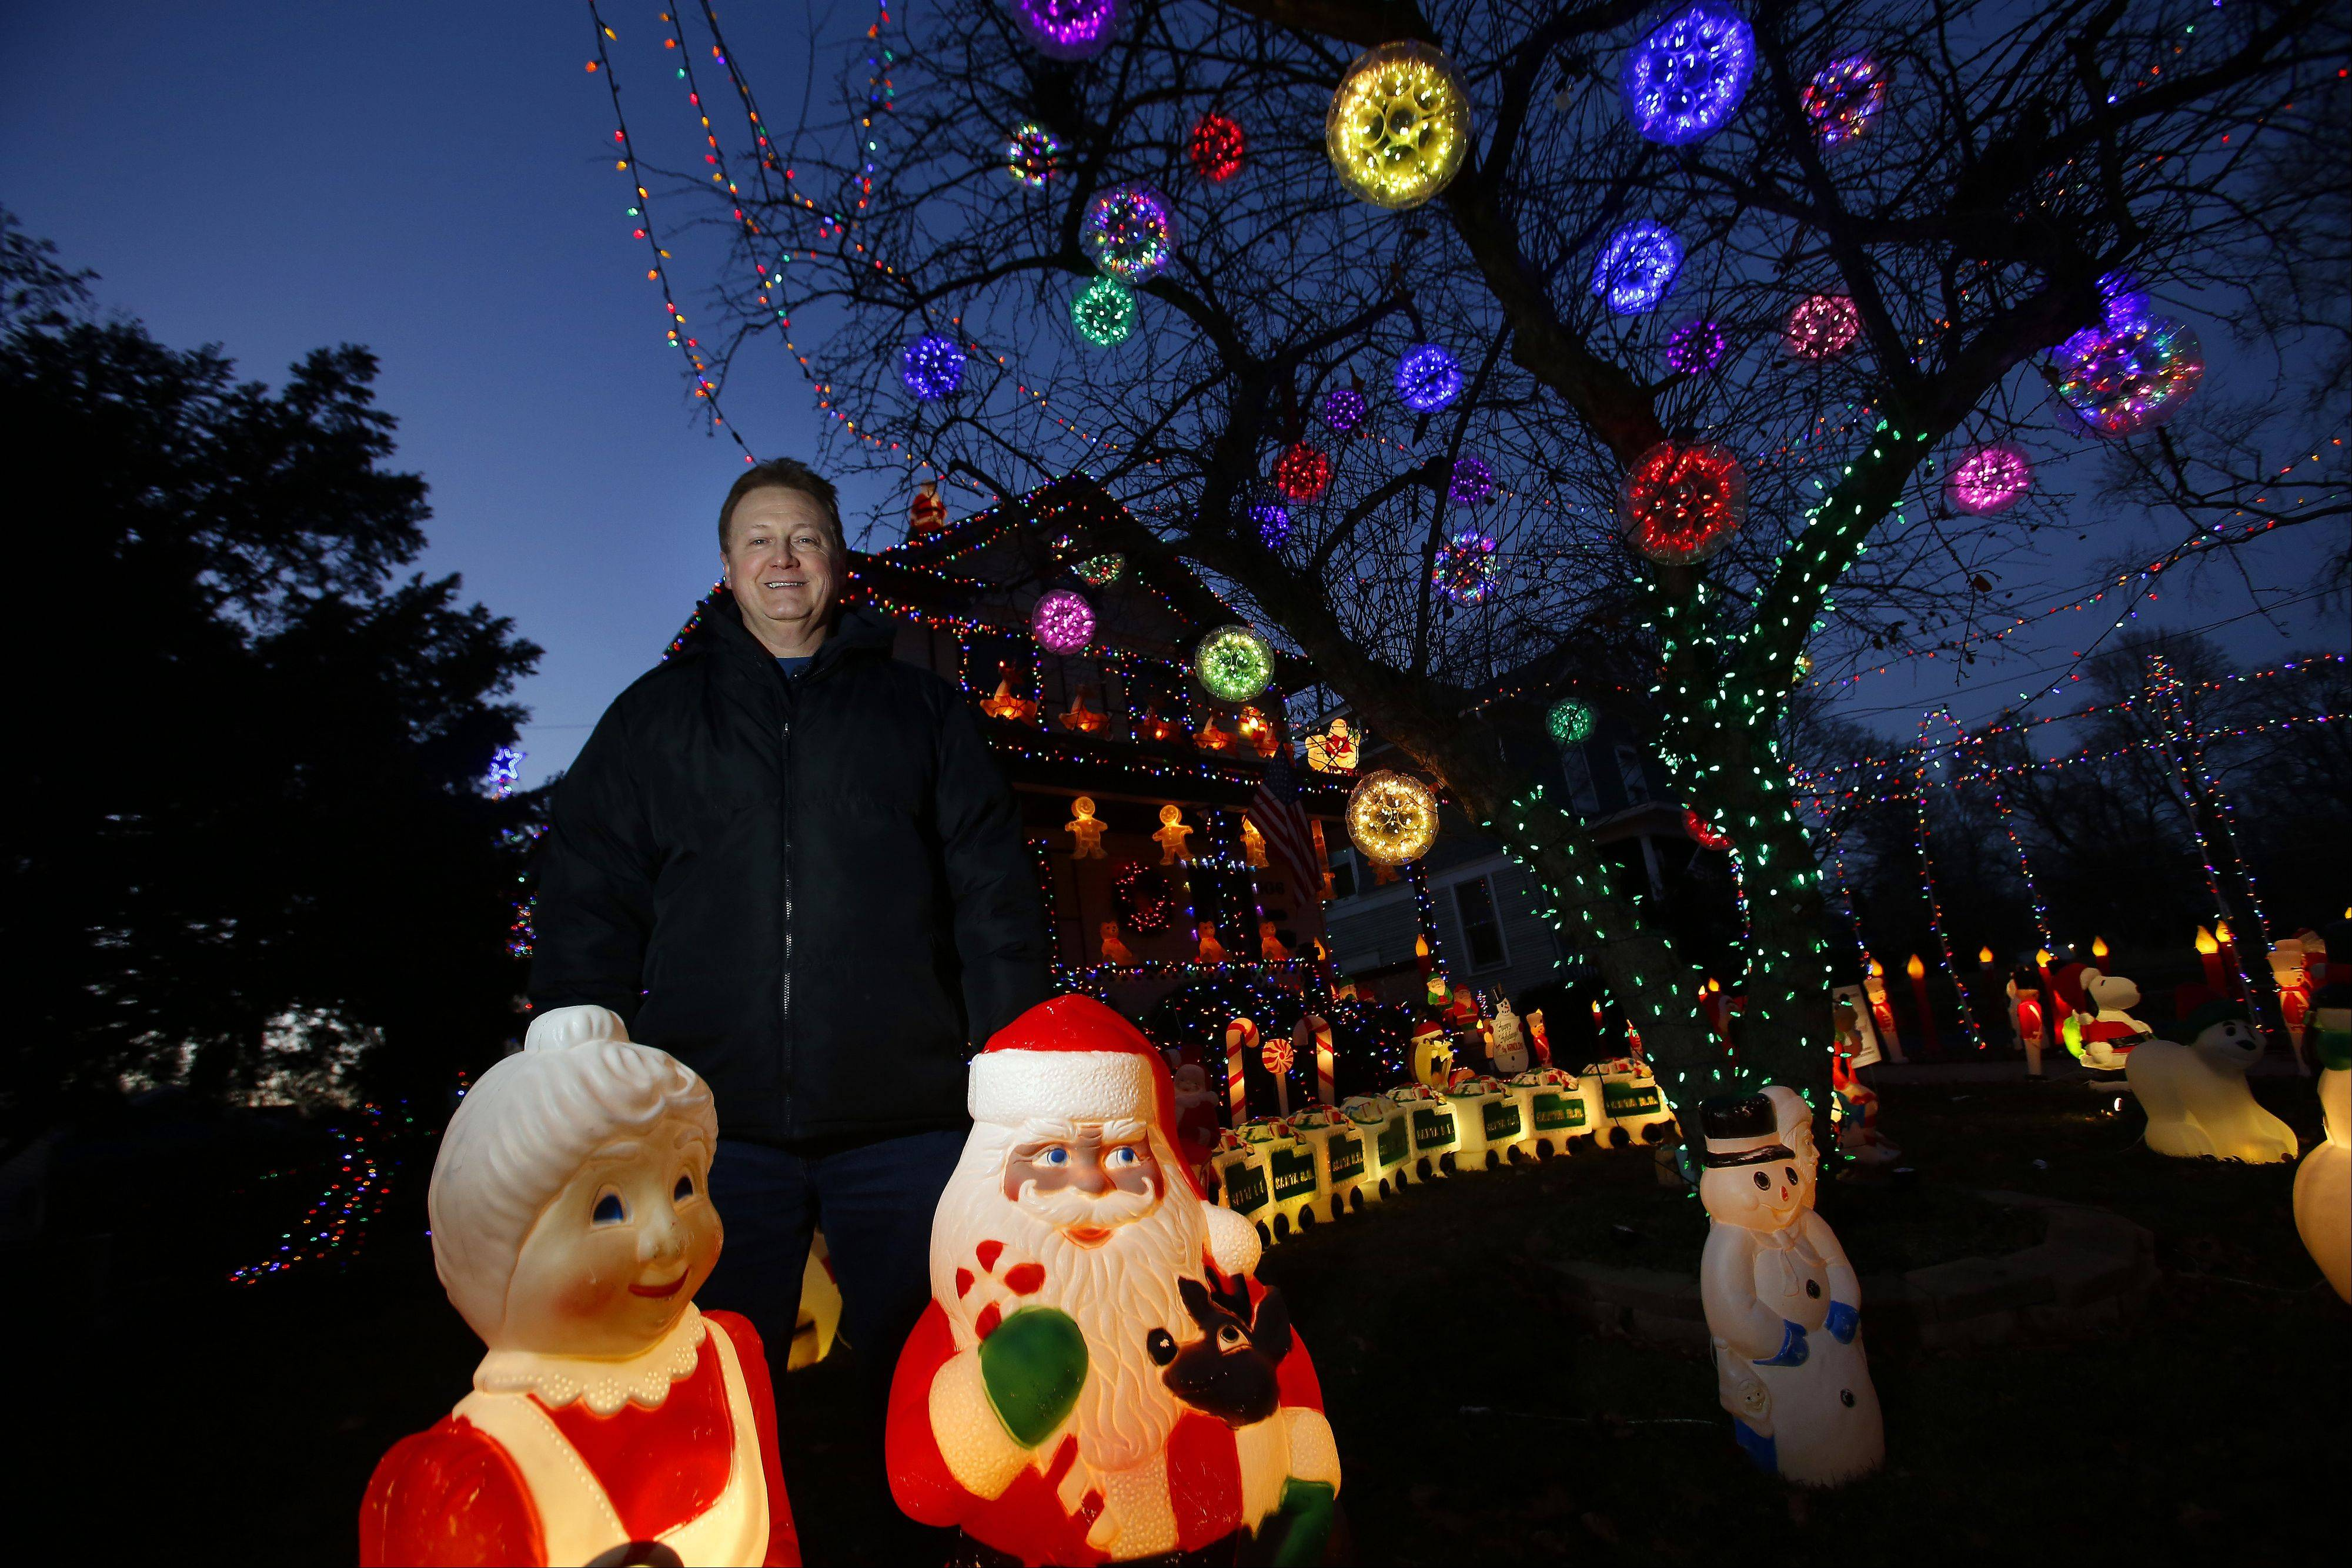 The ornaments that hang in Elgin resident Mike Arnold's tree were something that he saw with his wife while driving around looking at Christmas lights. They liked the ornaments and figured out a way to make them out of cups. Every year, they add another ornament to the tree, now totaling 38.